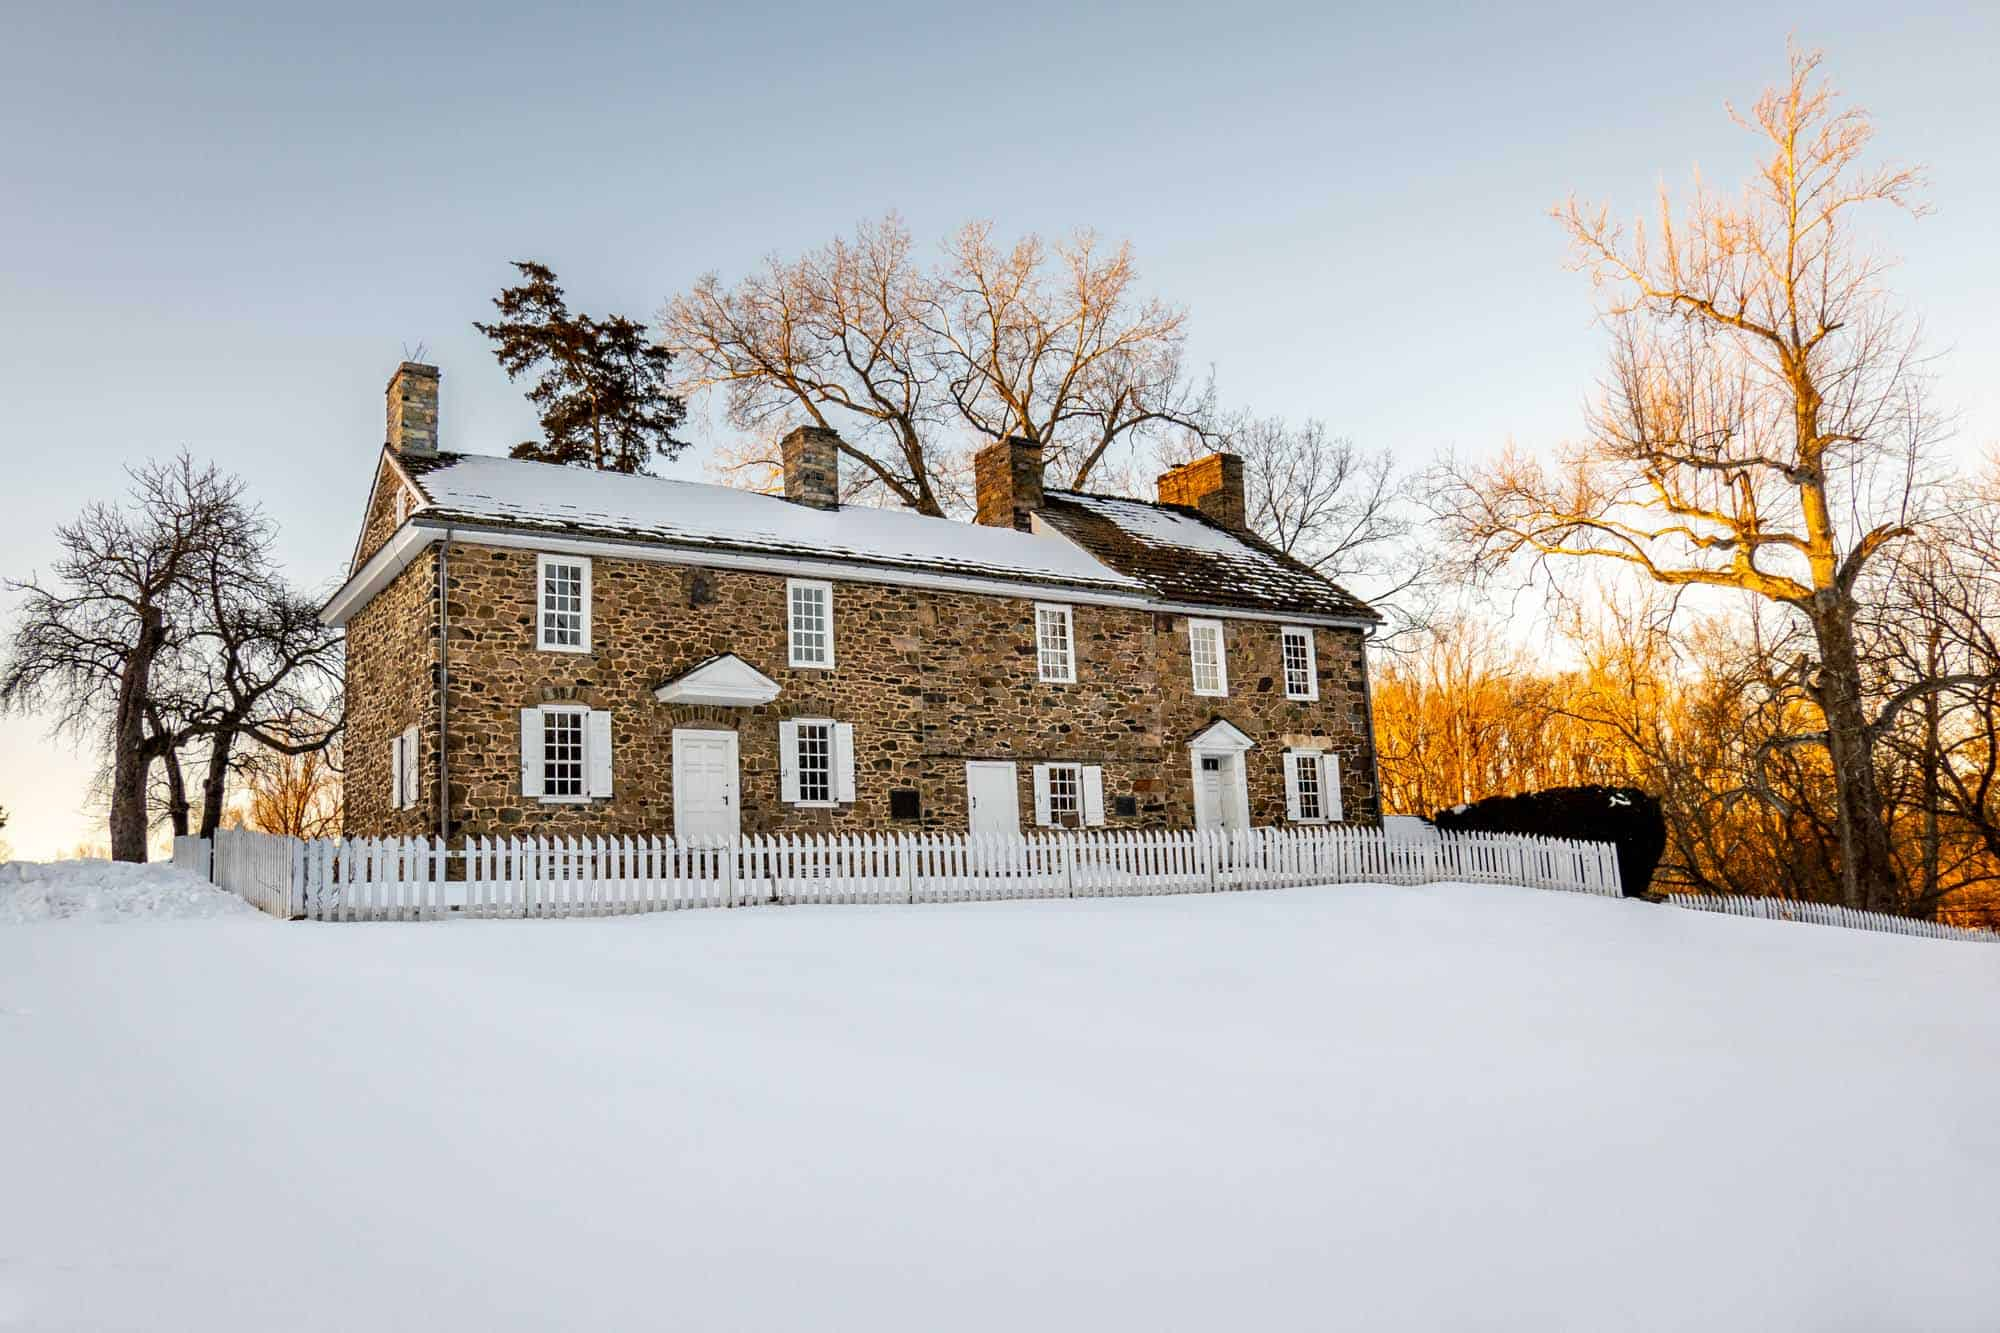 Exterior of a colonial stone building on a snowy day